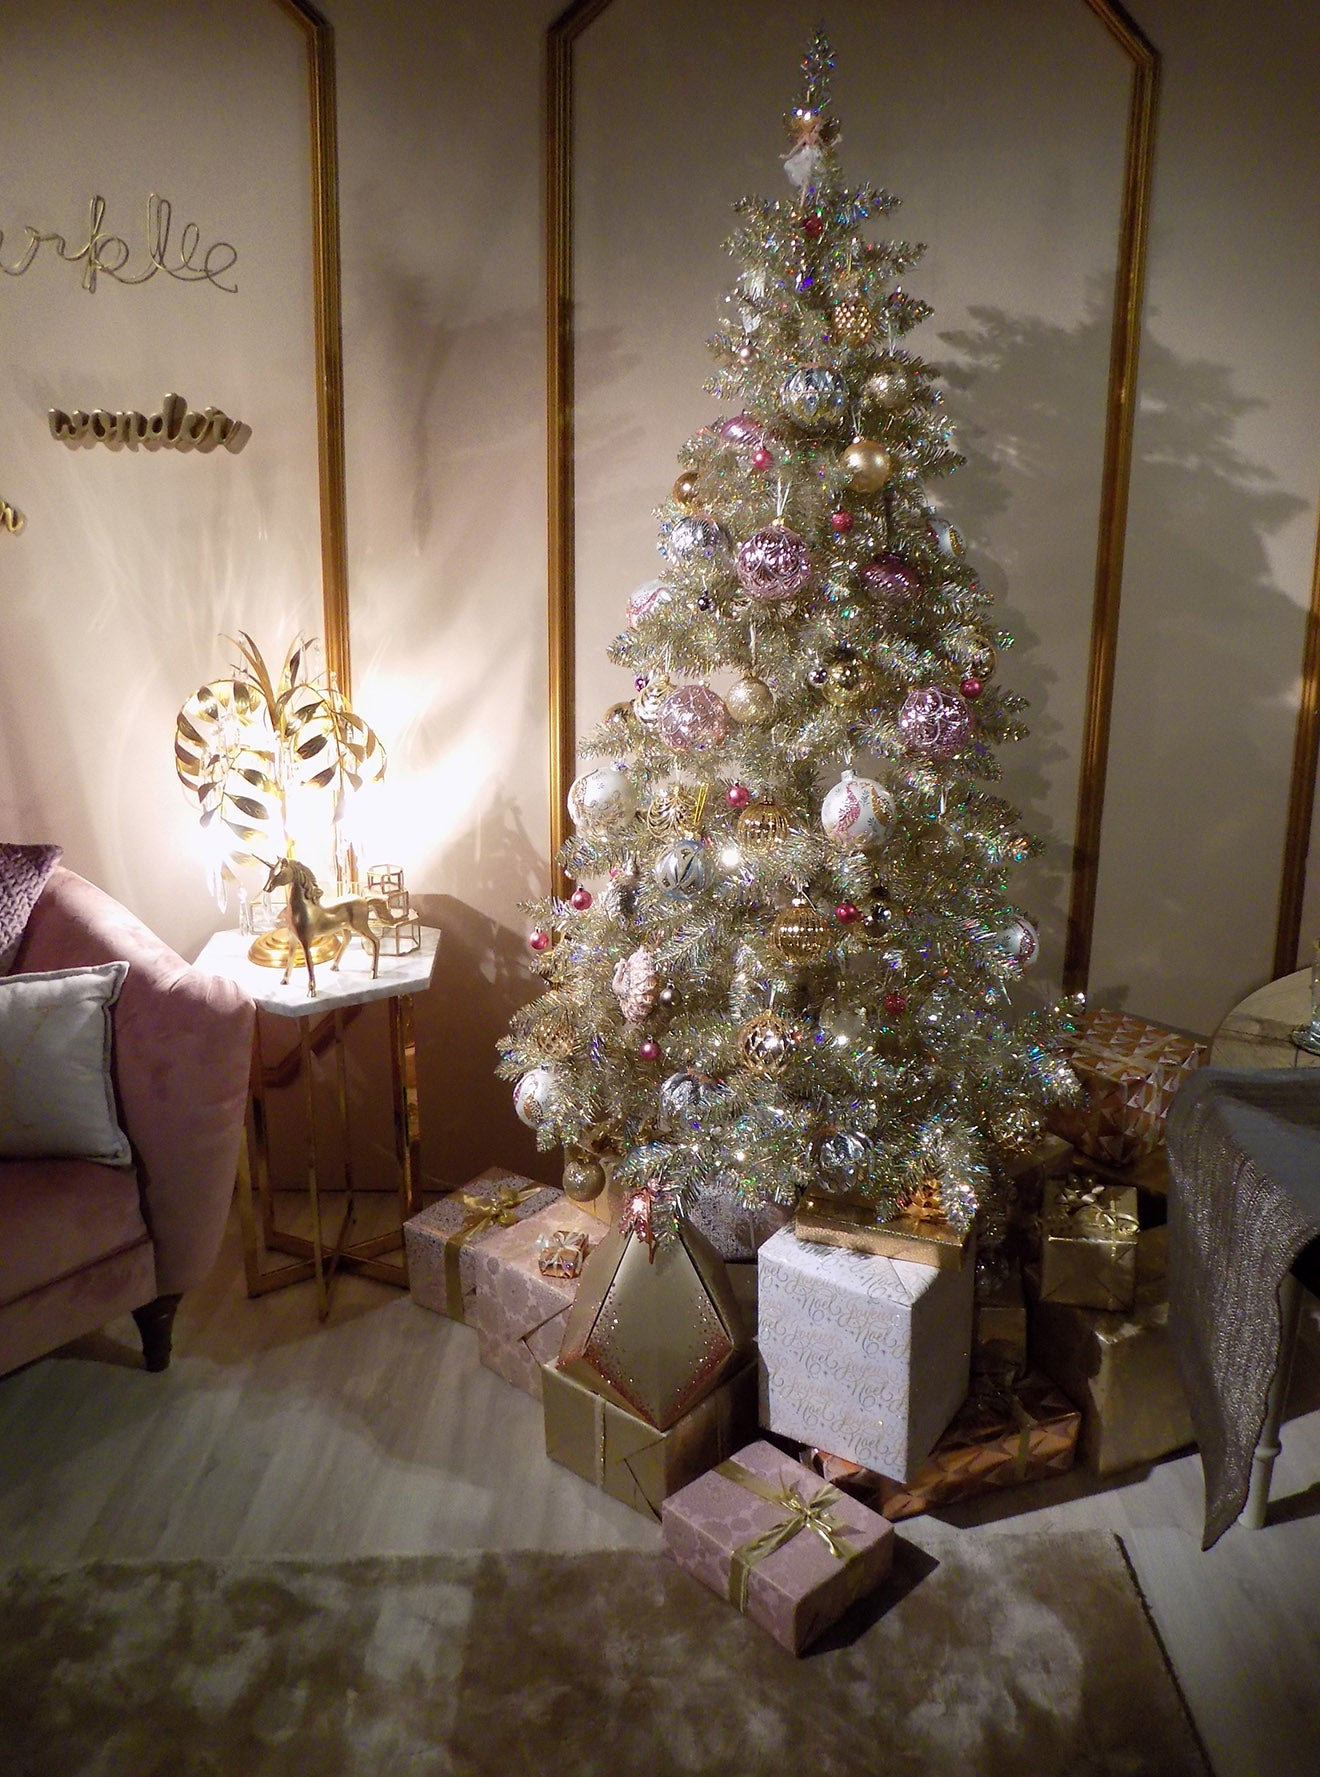 Marks and Spencer gold Christmas tree and decorations from their home collection